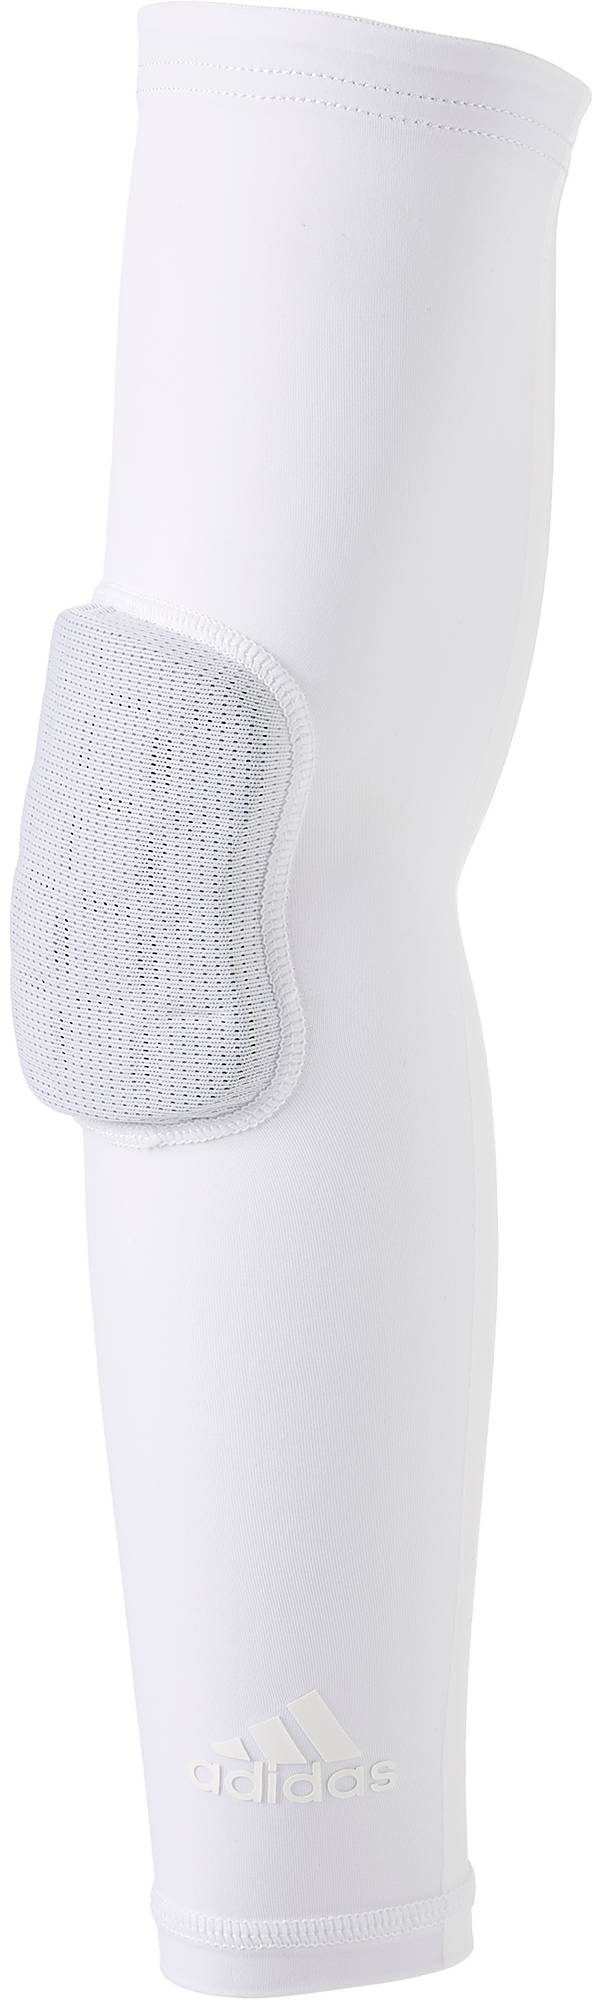 adidas Padded Compression Arm Sleeve product image